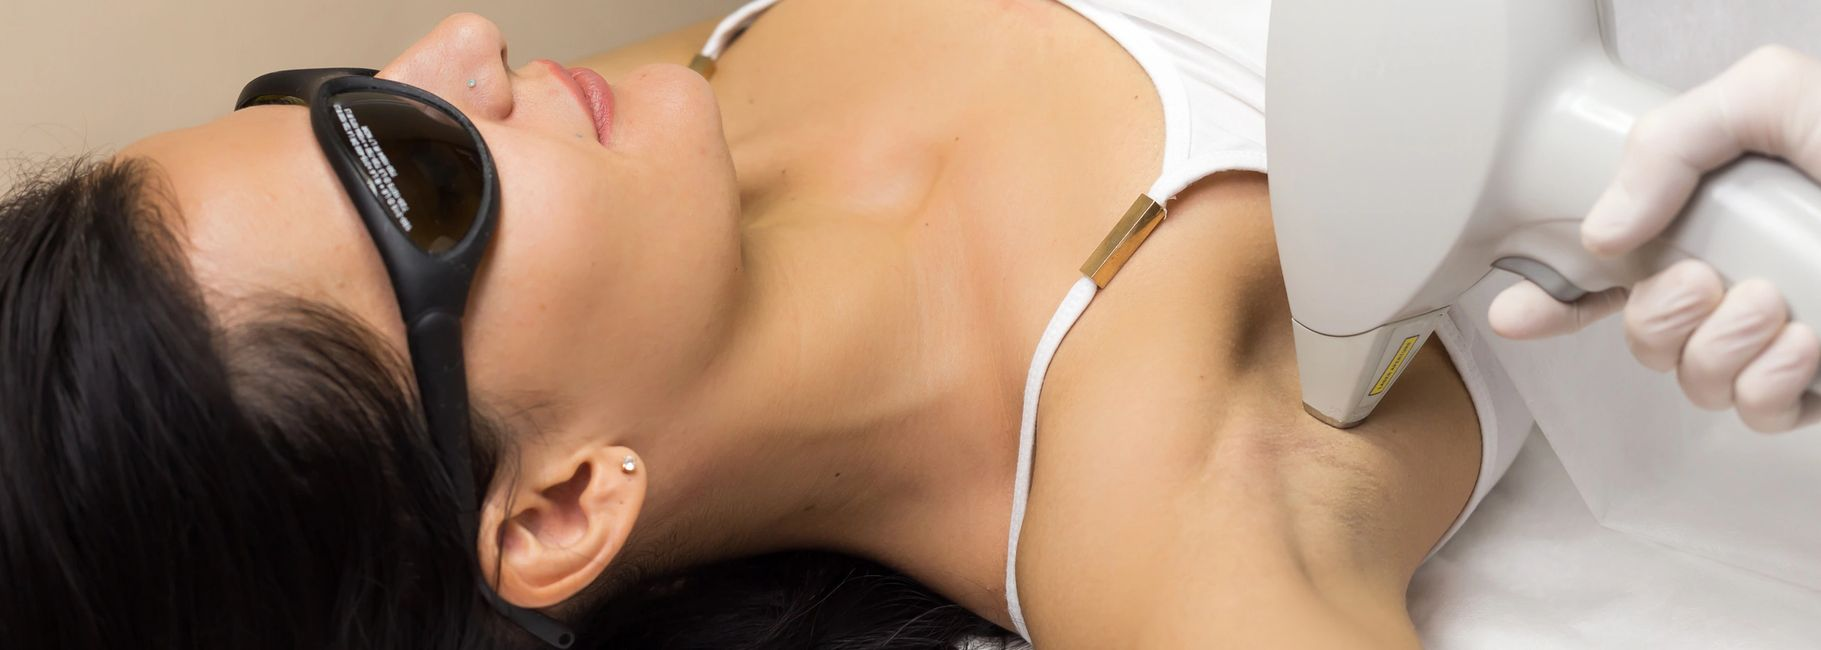 Cutera permanent laser hair removal little rock, Arkansas, laser hair removal near me,